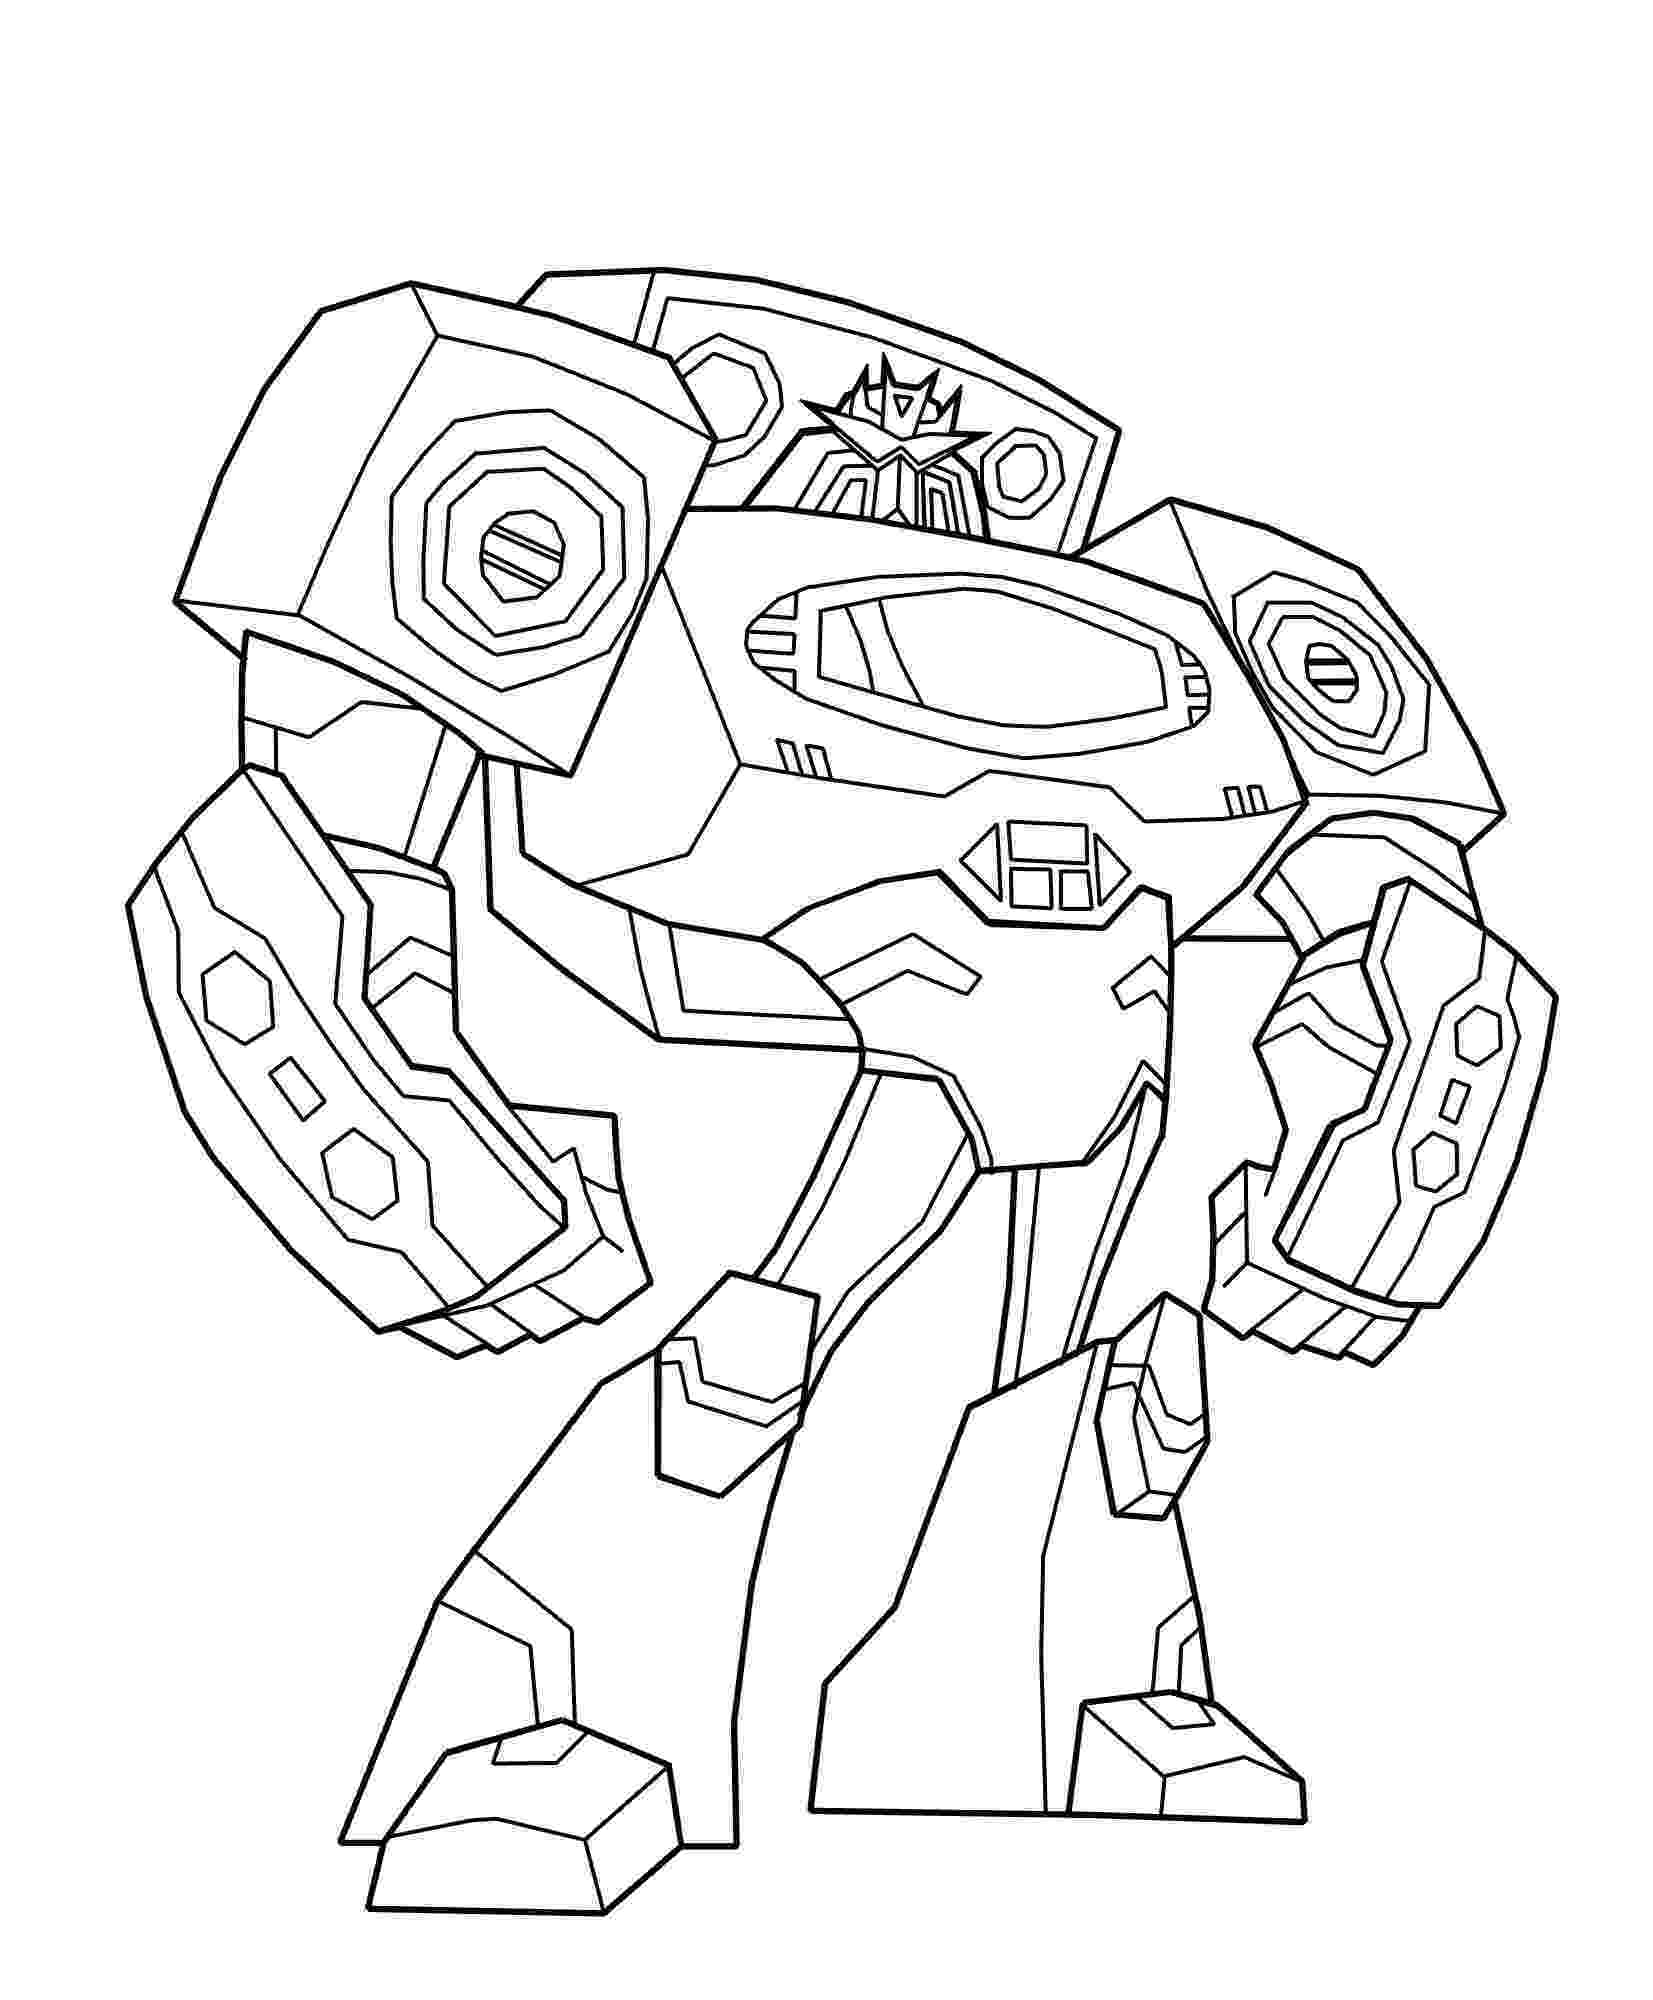 coloring pages transformers transformers coloring pages getcoloringpagescom transformers pages coloring 1 1